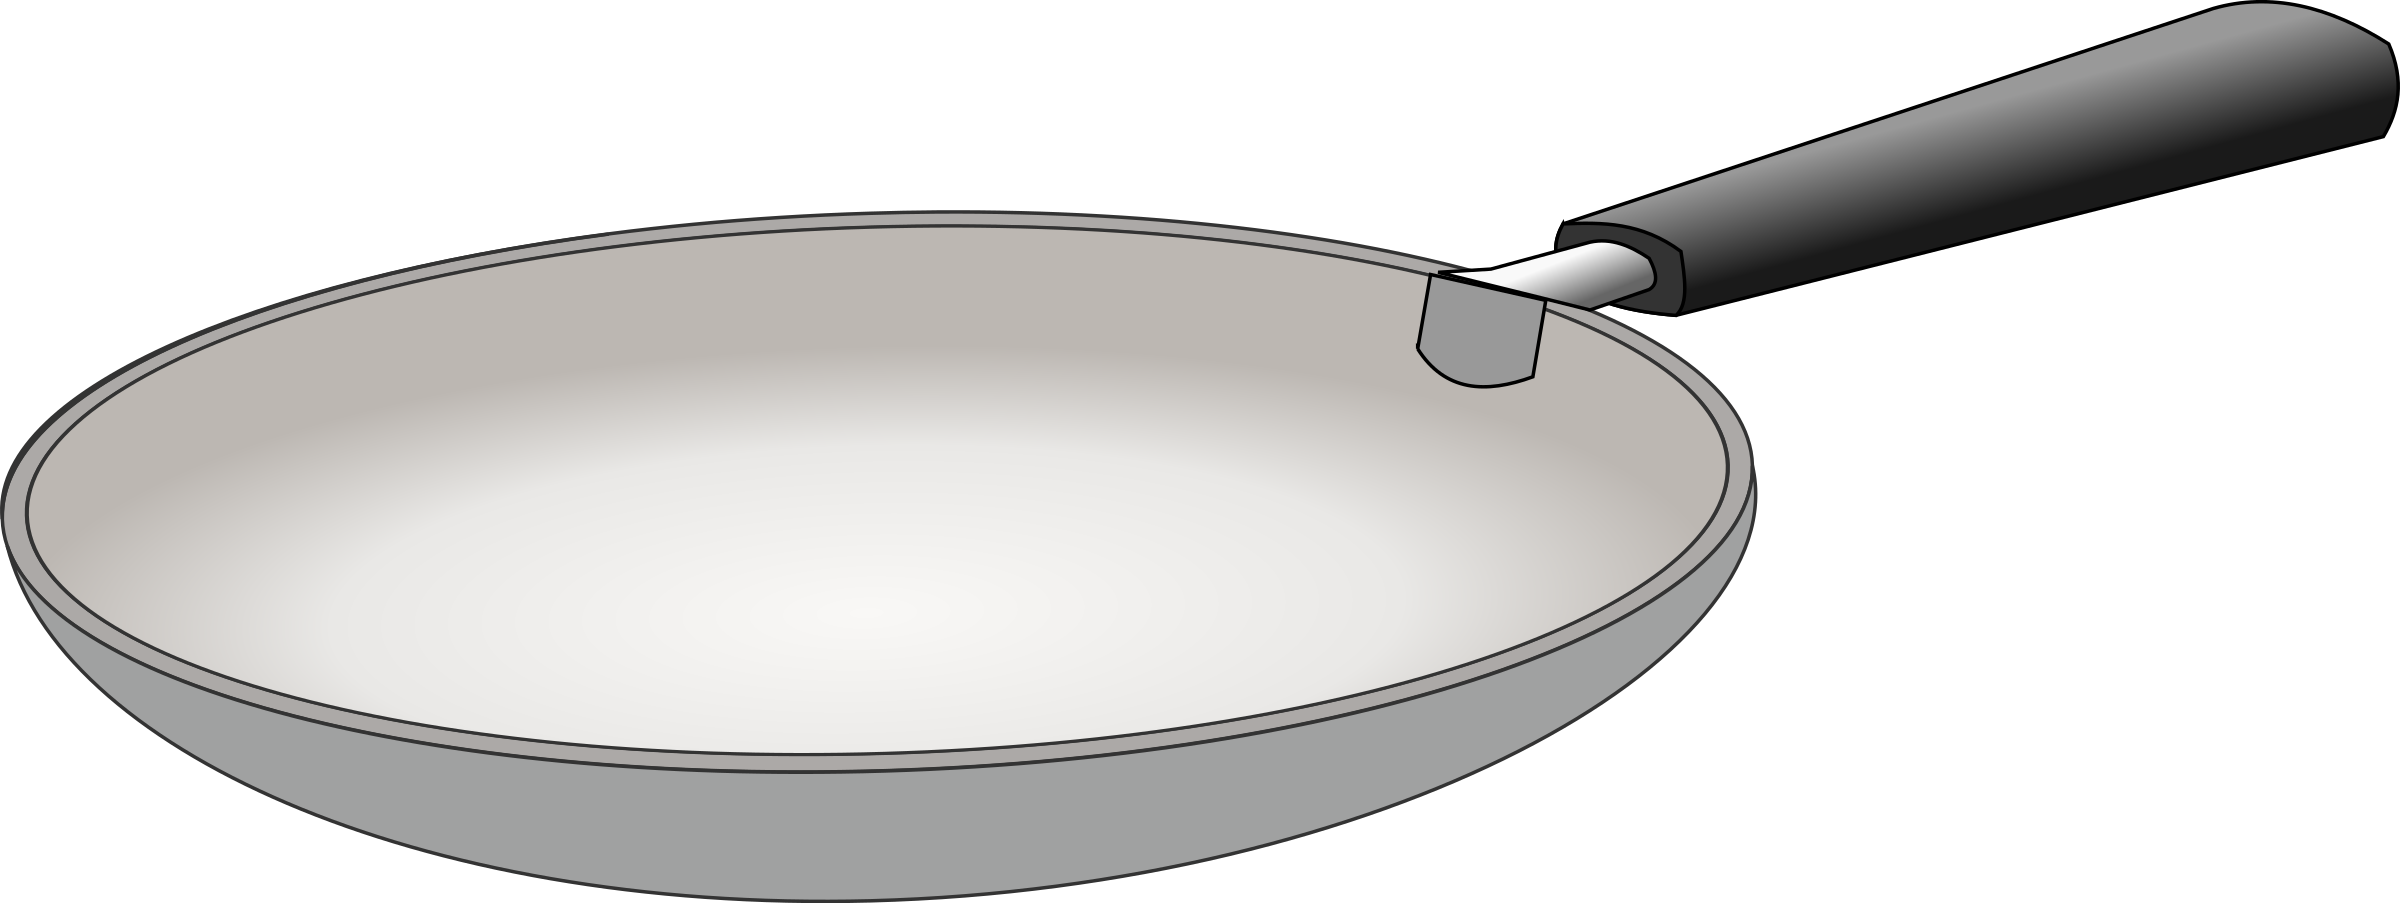 Clipart padella frying pan for Art and cuisine ceramic cookware